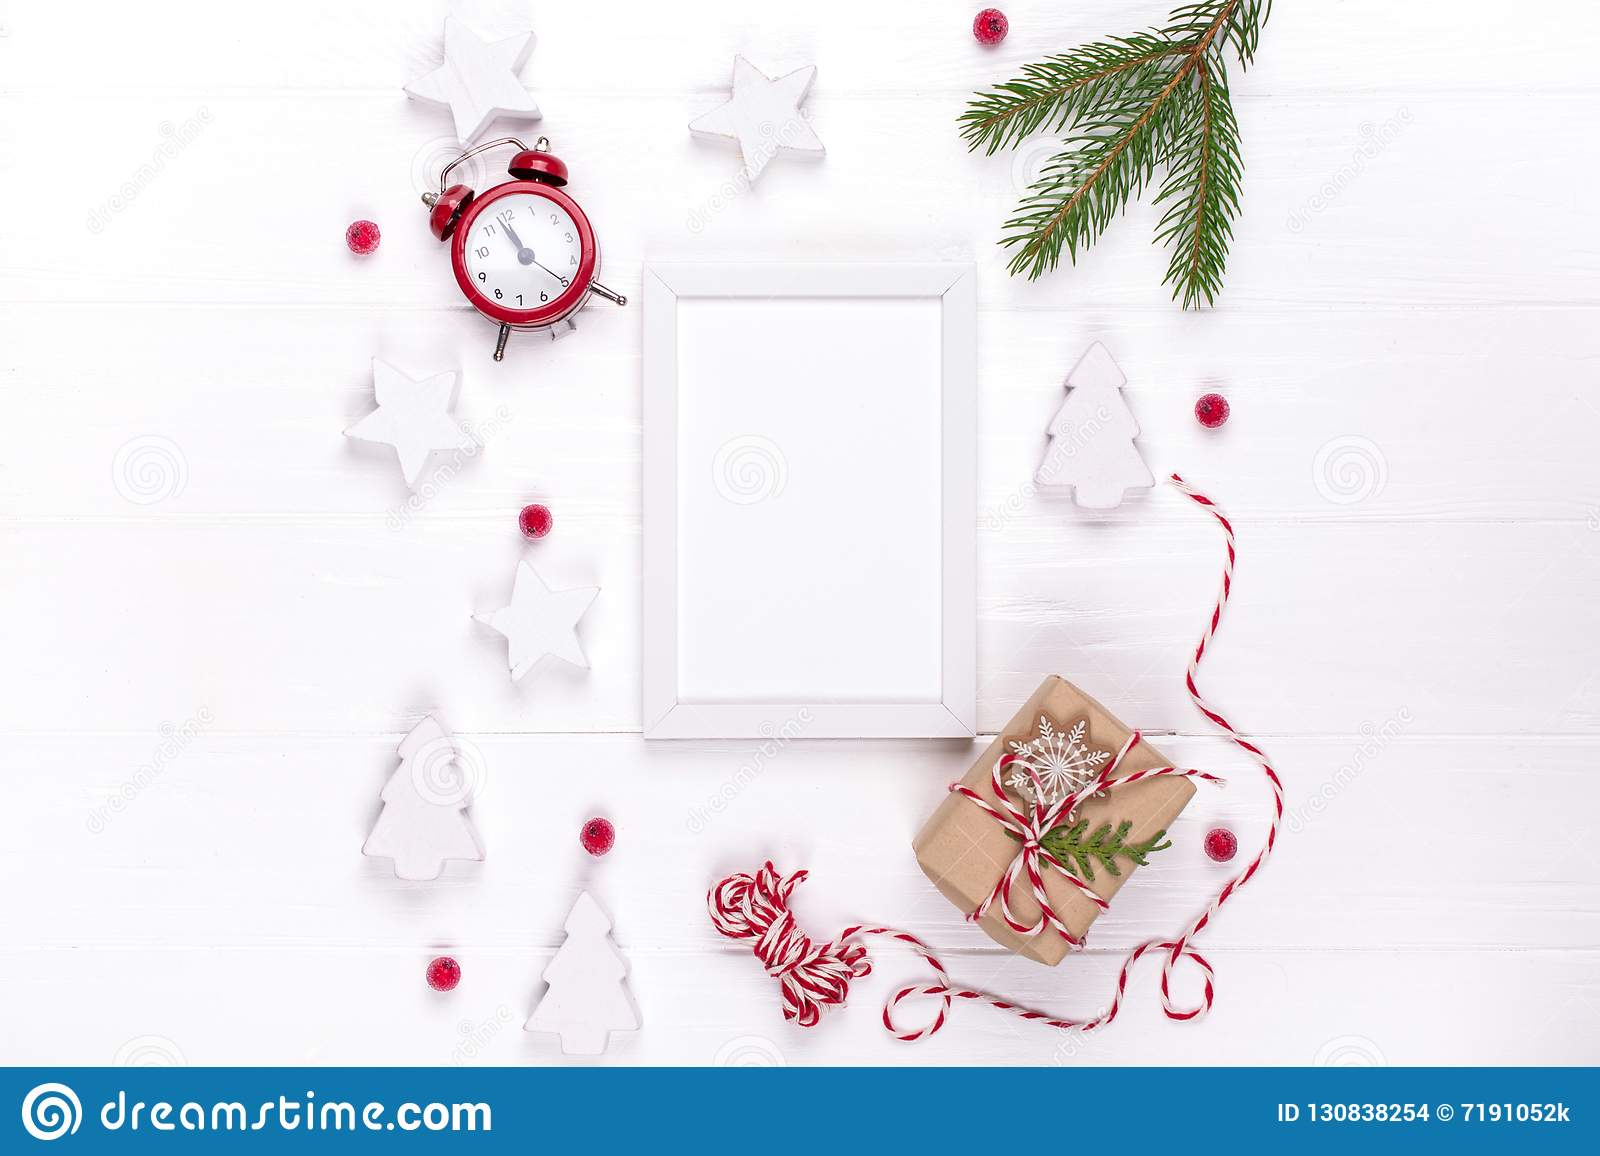 Greeting Card Mock Up Template With Christmas Decorations